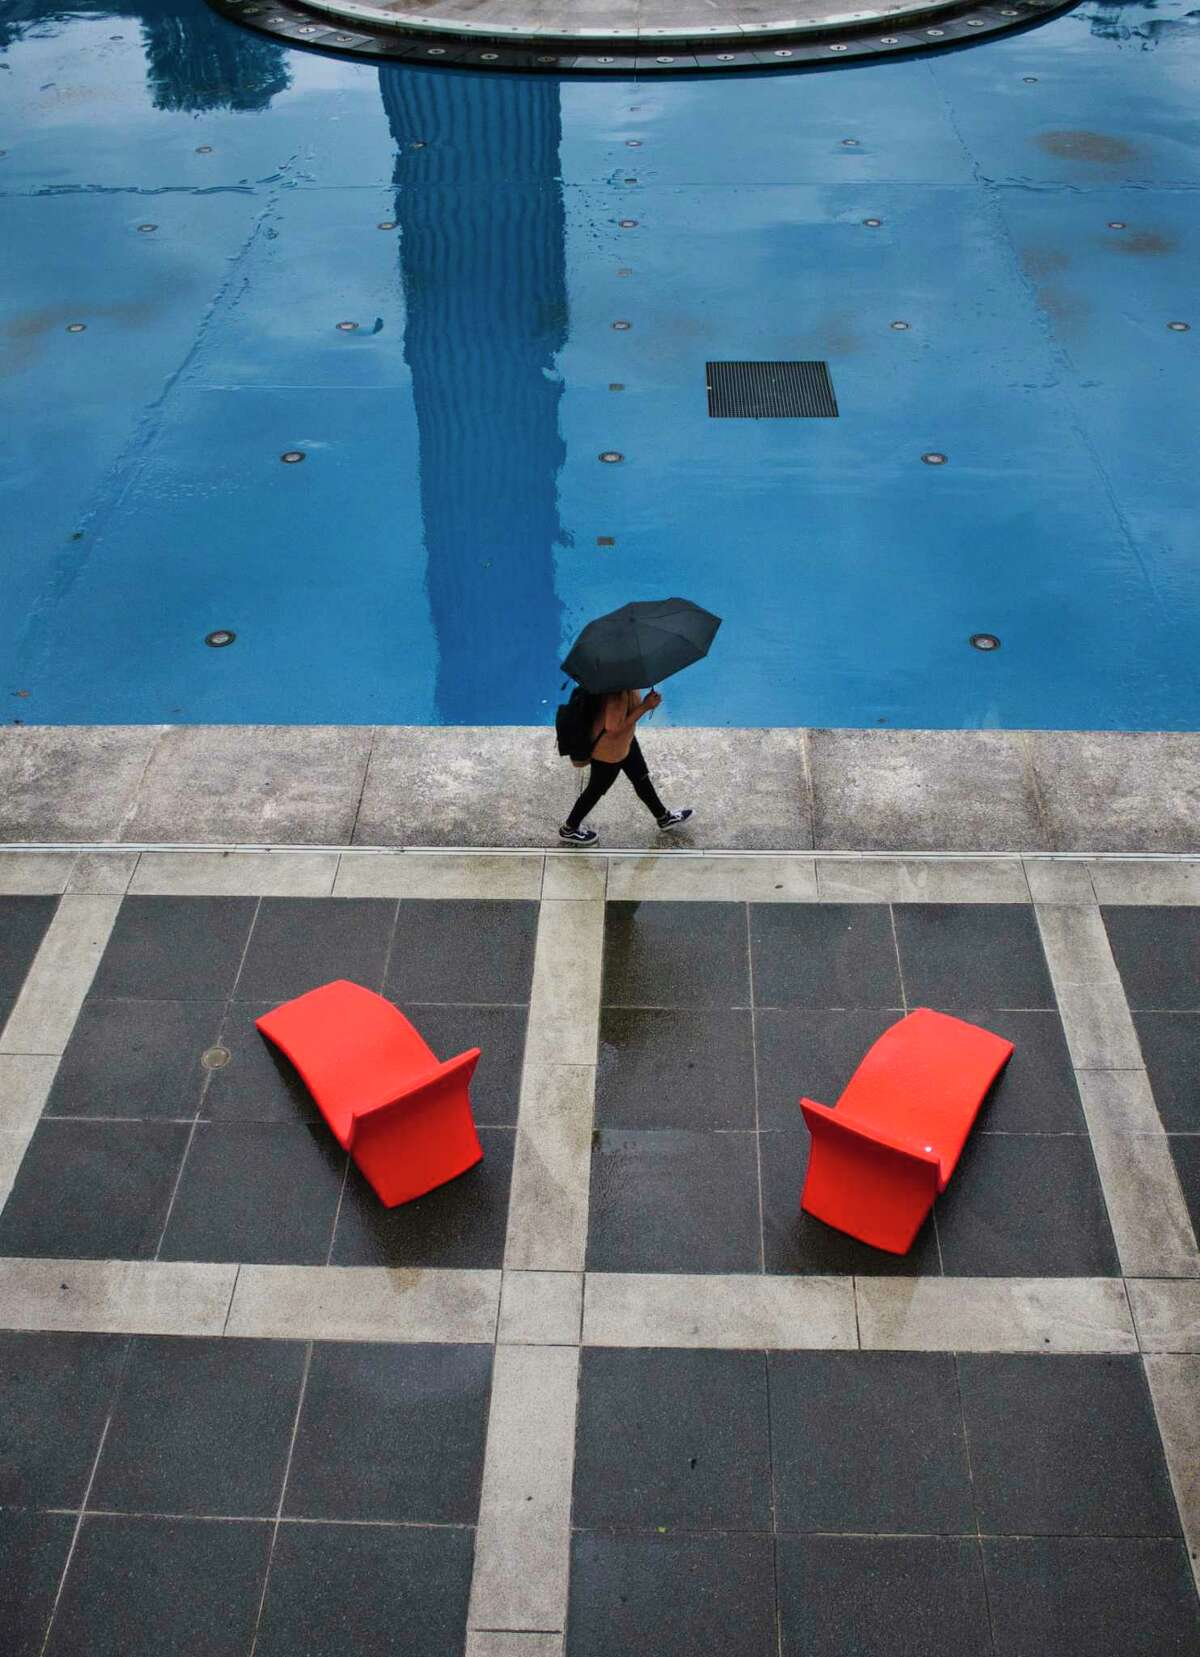 A University at Albany student walks through the campus in the rain on the first day of classes on Monday, Aug. 24, 2021, in Albany. The Food and Drug Administration's final approval Monday of Pfizer's COVID-19 vaccination triggered vaccination mandates at UAlbany and the rest of the state's SUNYcampuses.